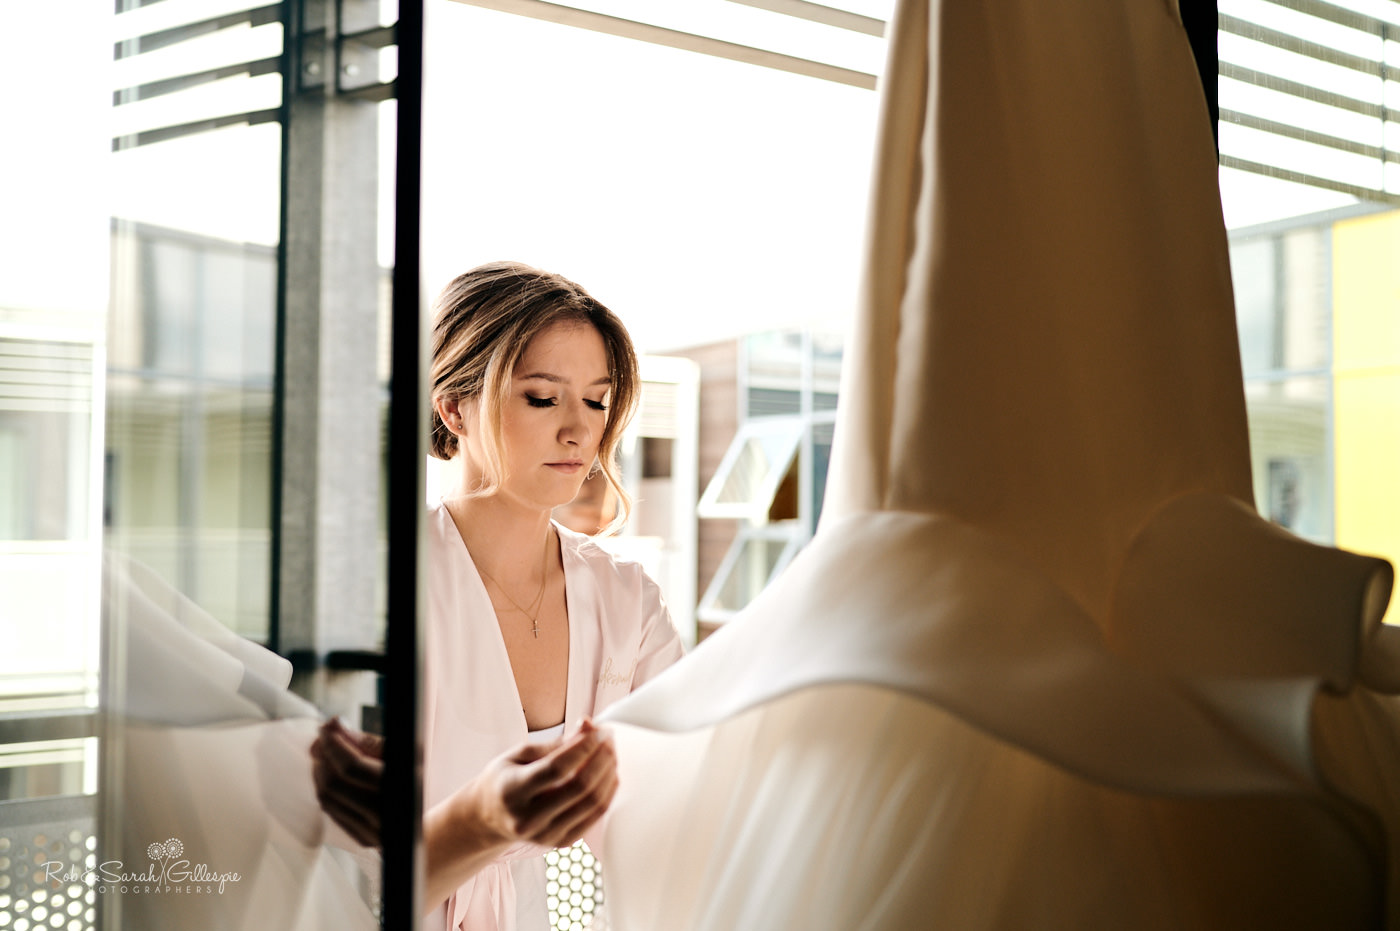 Bridesmaid adjusts wedding dress in window